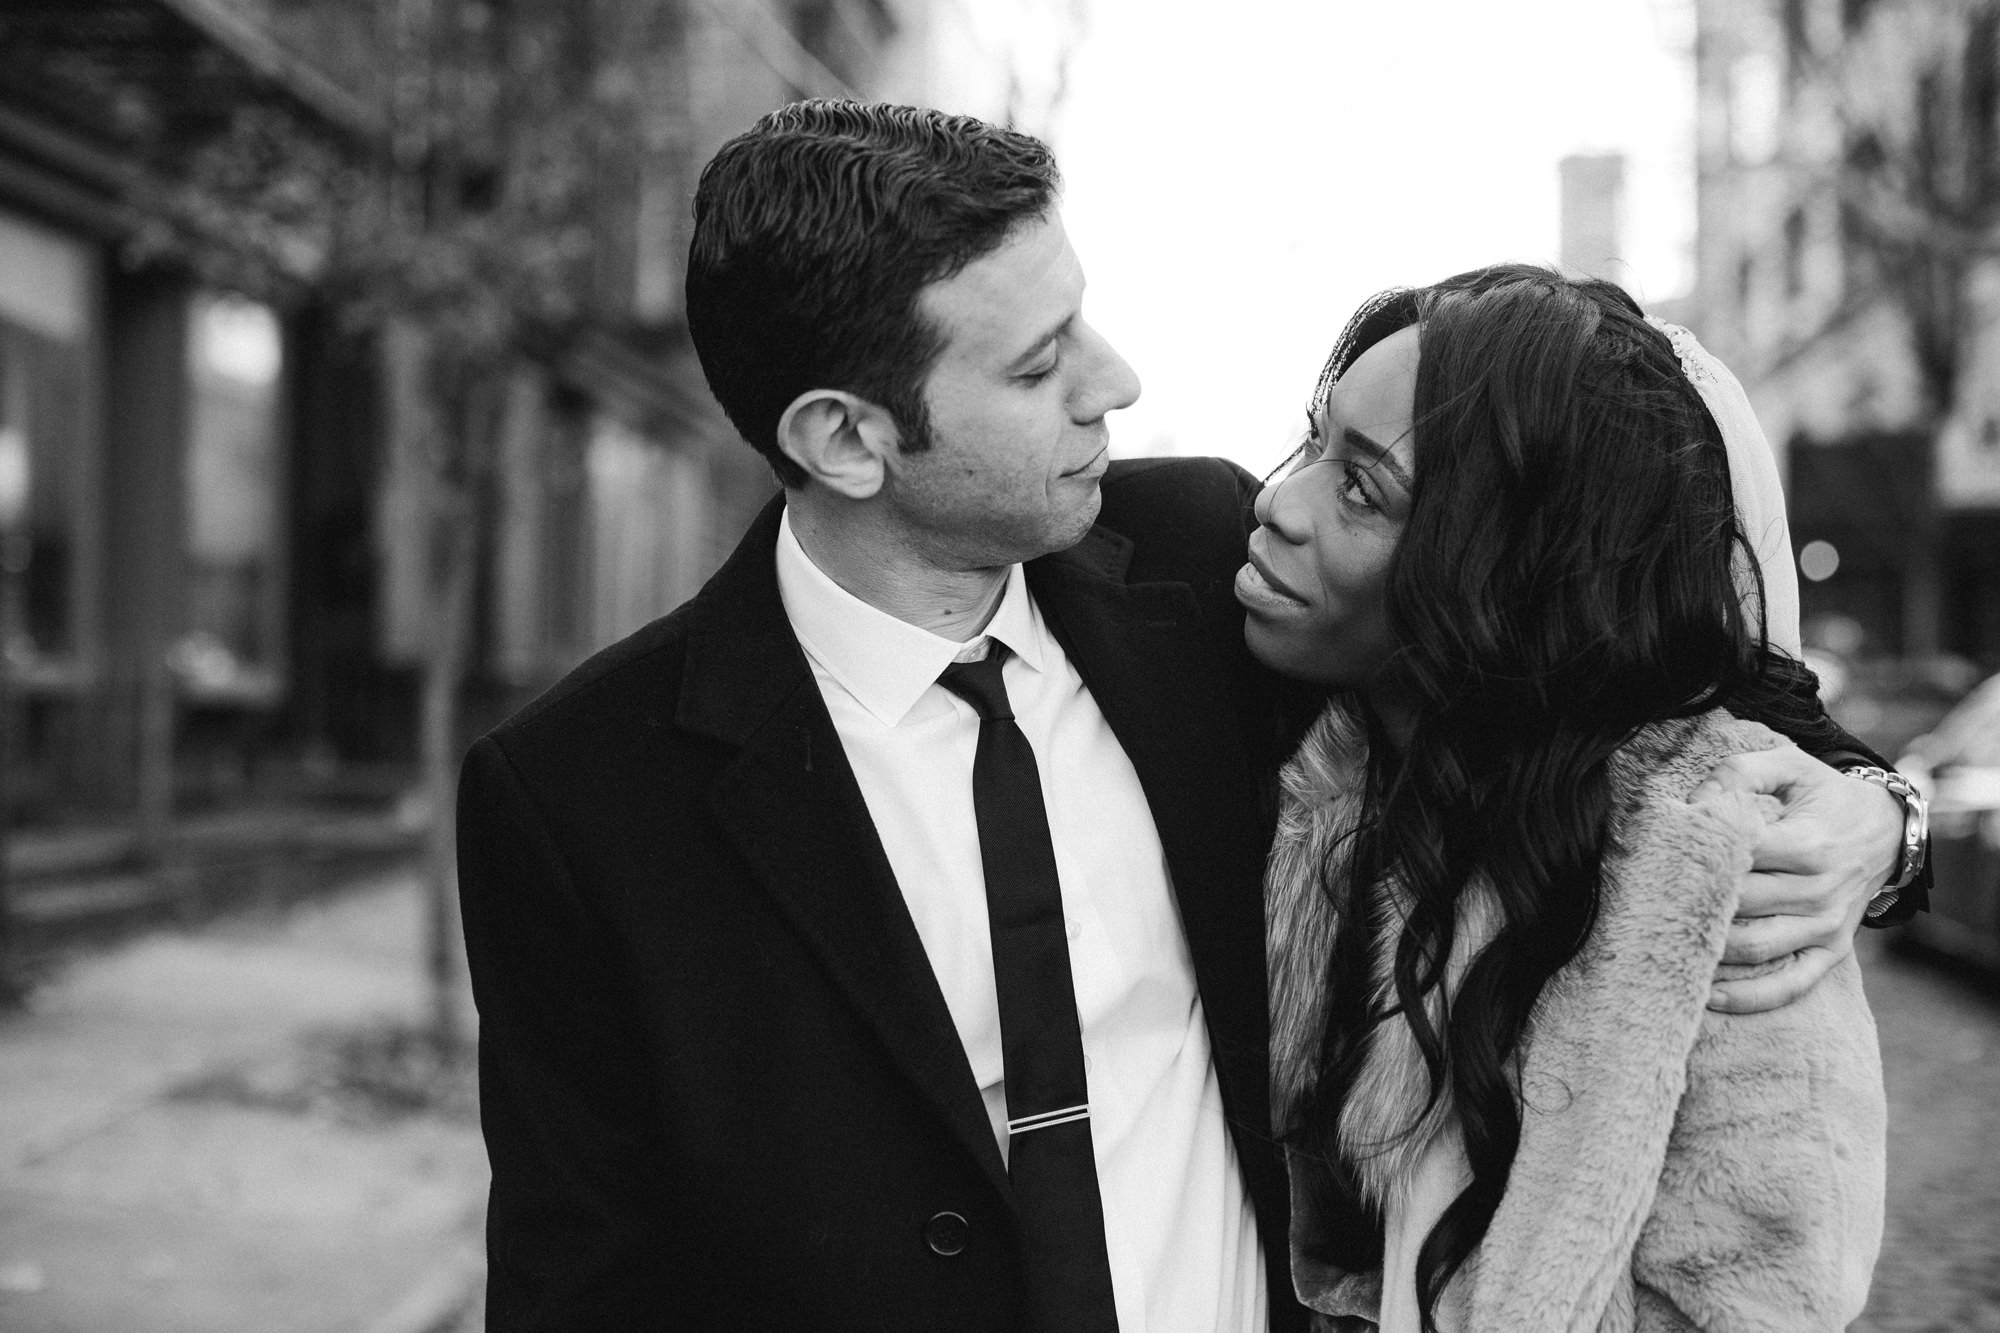 BROOKLYN_ELOPEMENT_SAMMBLAKE_NDE_268.jpg